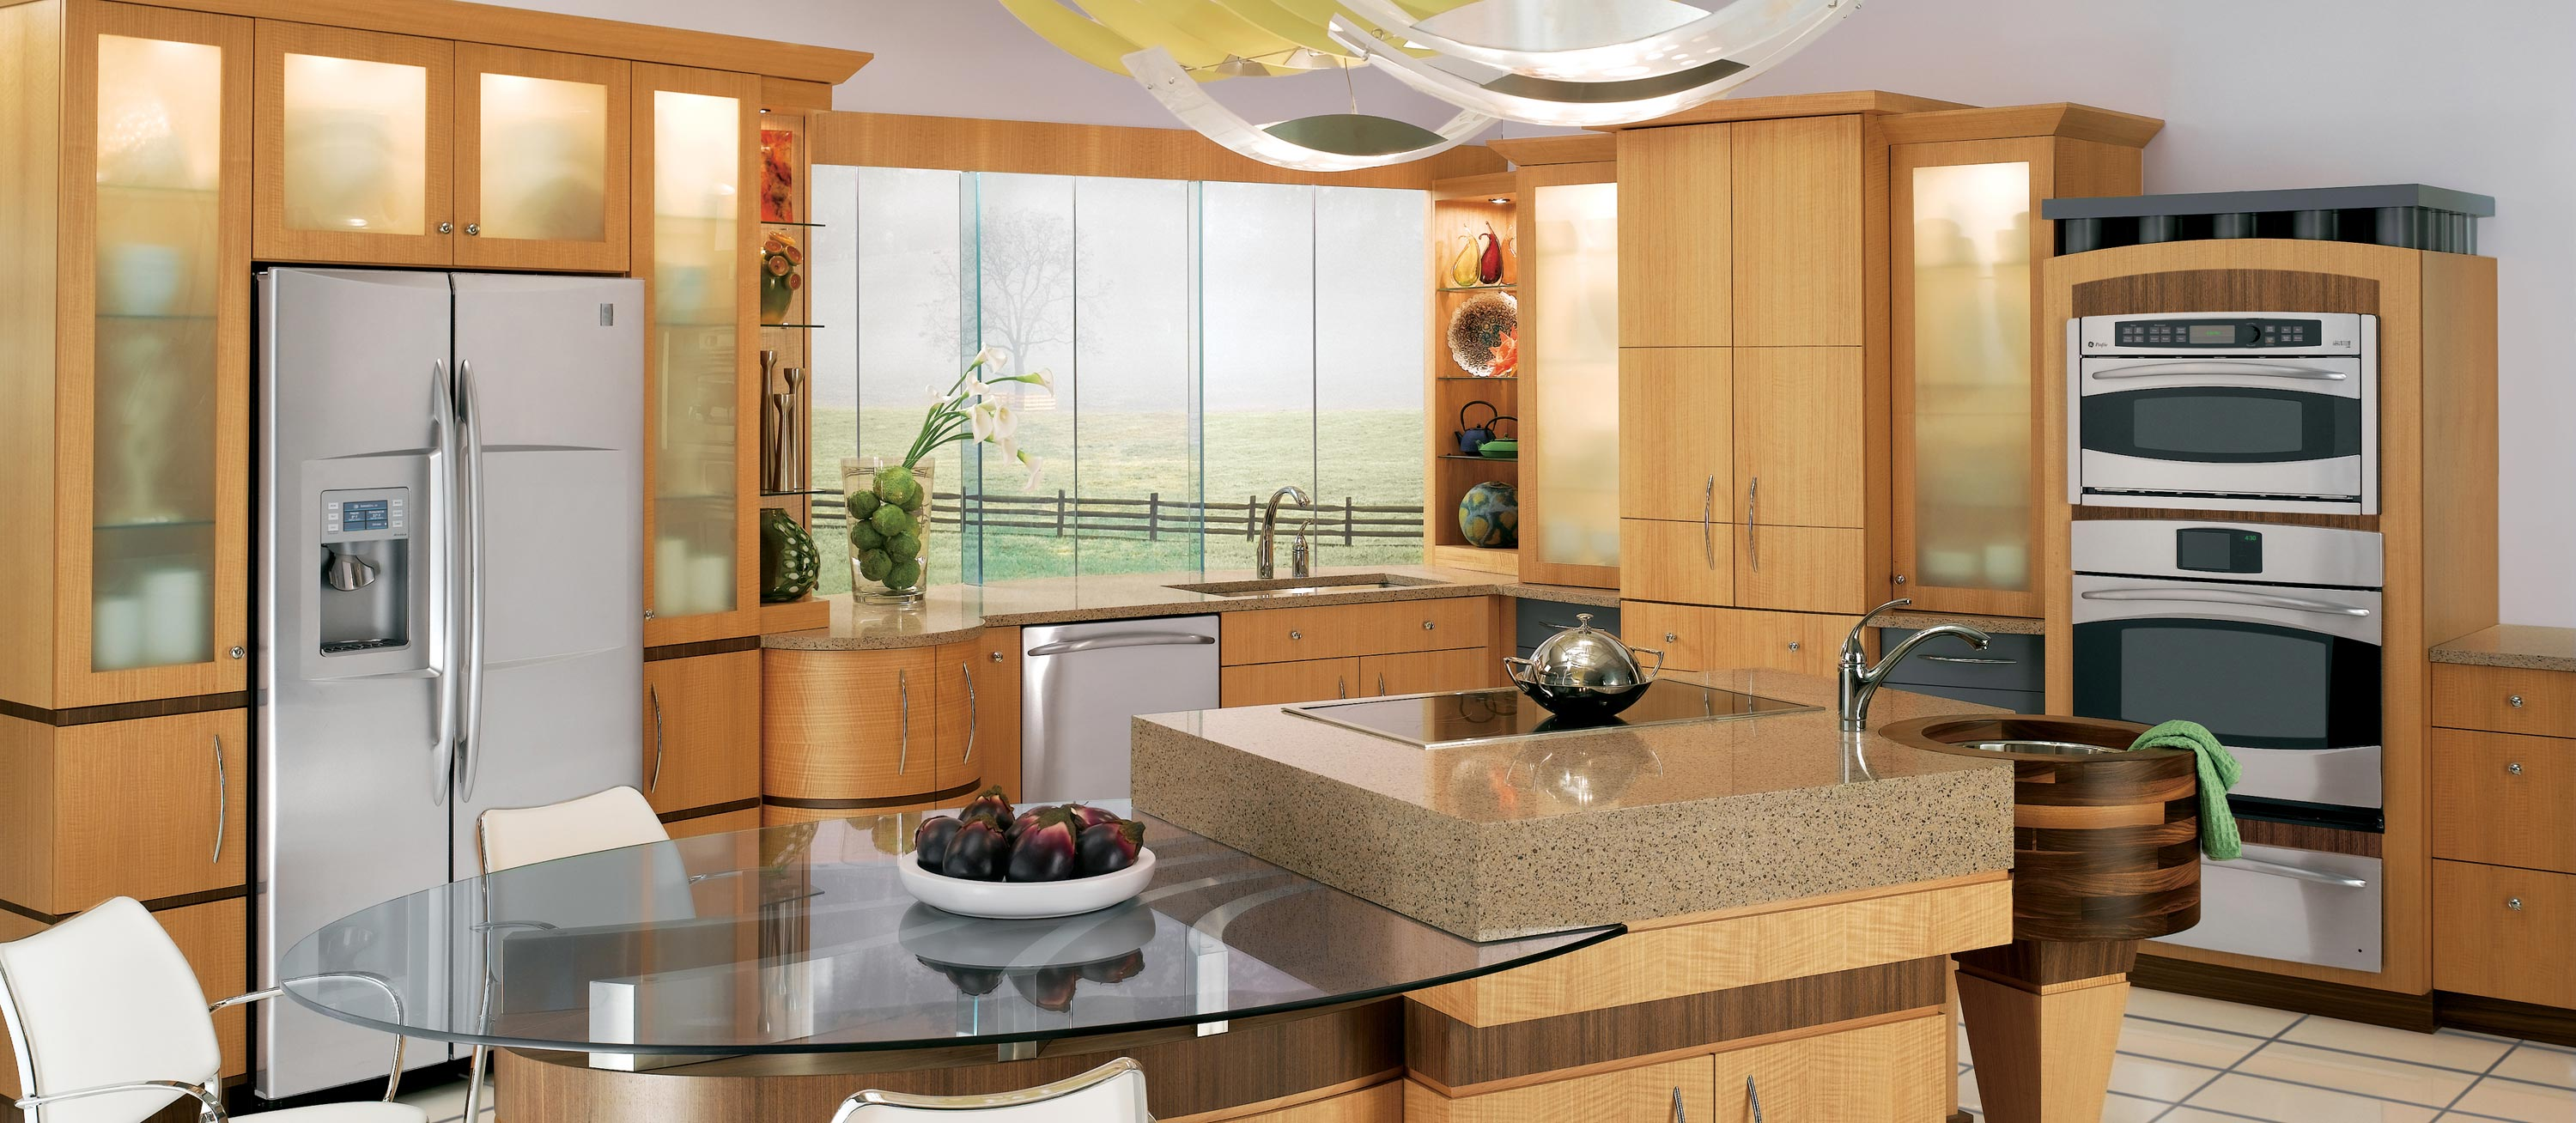 Kitchen construction design and layout -  Designs For Kitchen Great Kitchen Ideas Cmeg Construction